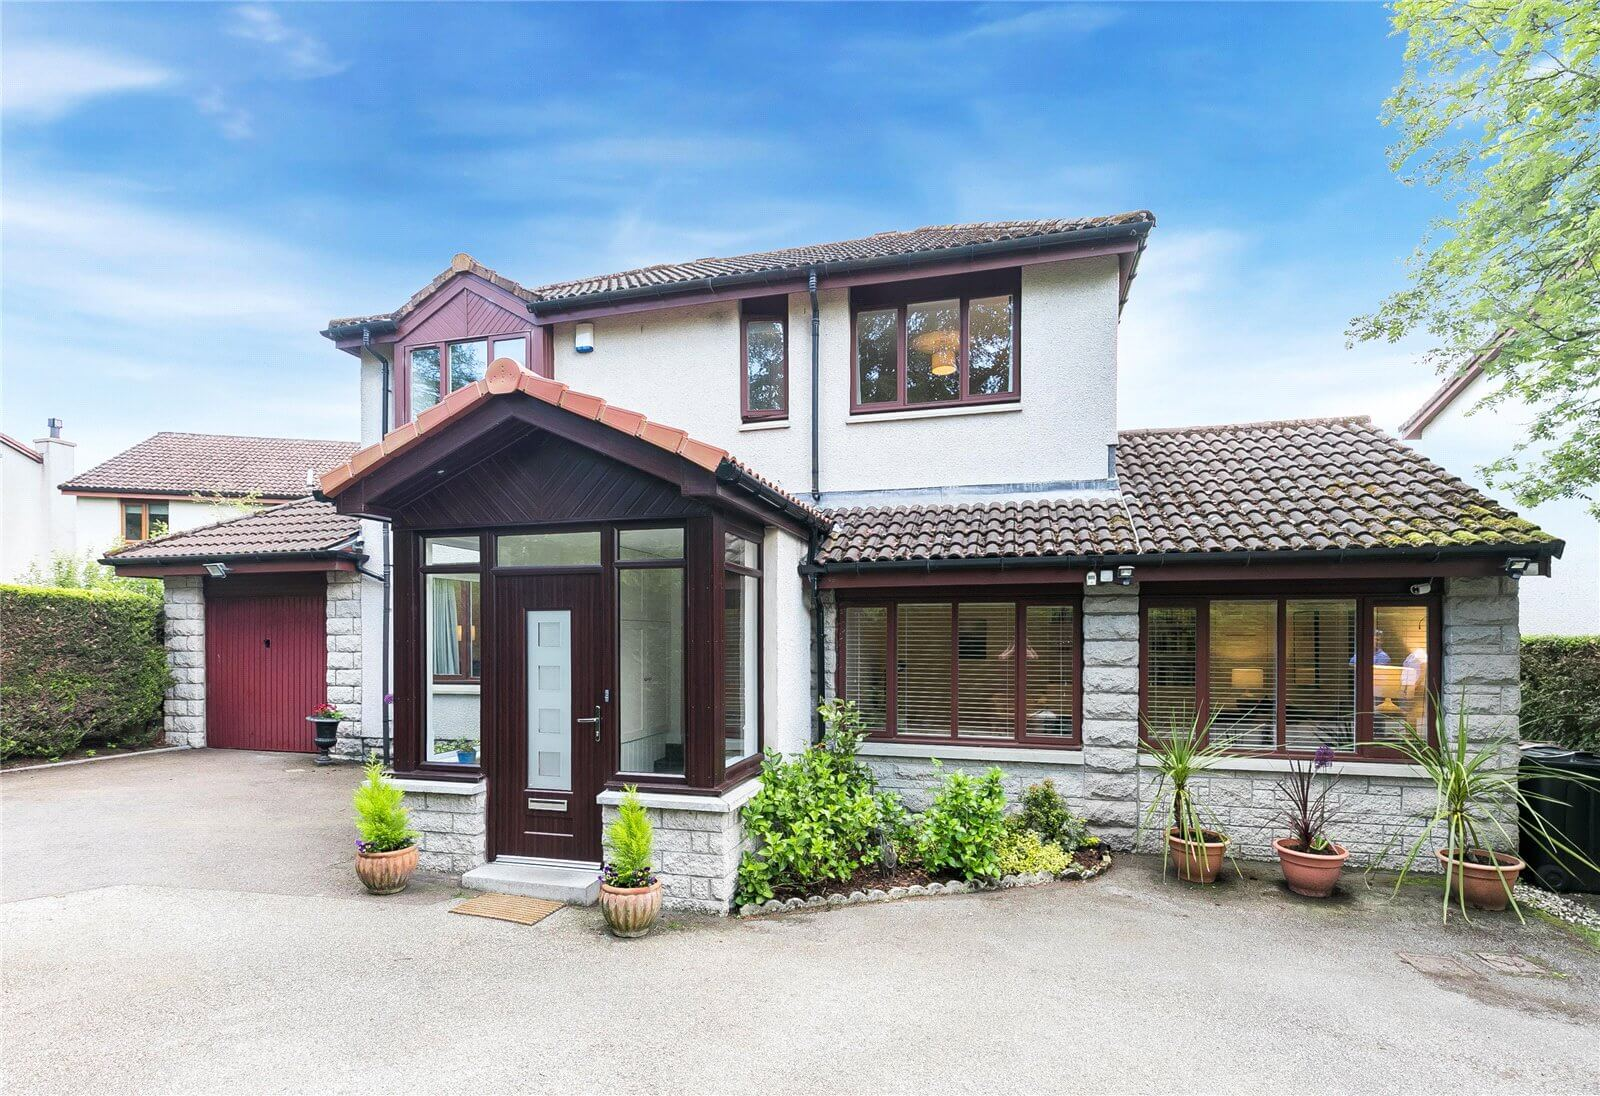 Our latest properties for sale and to let (27th June 2019)